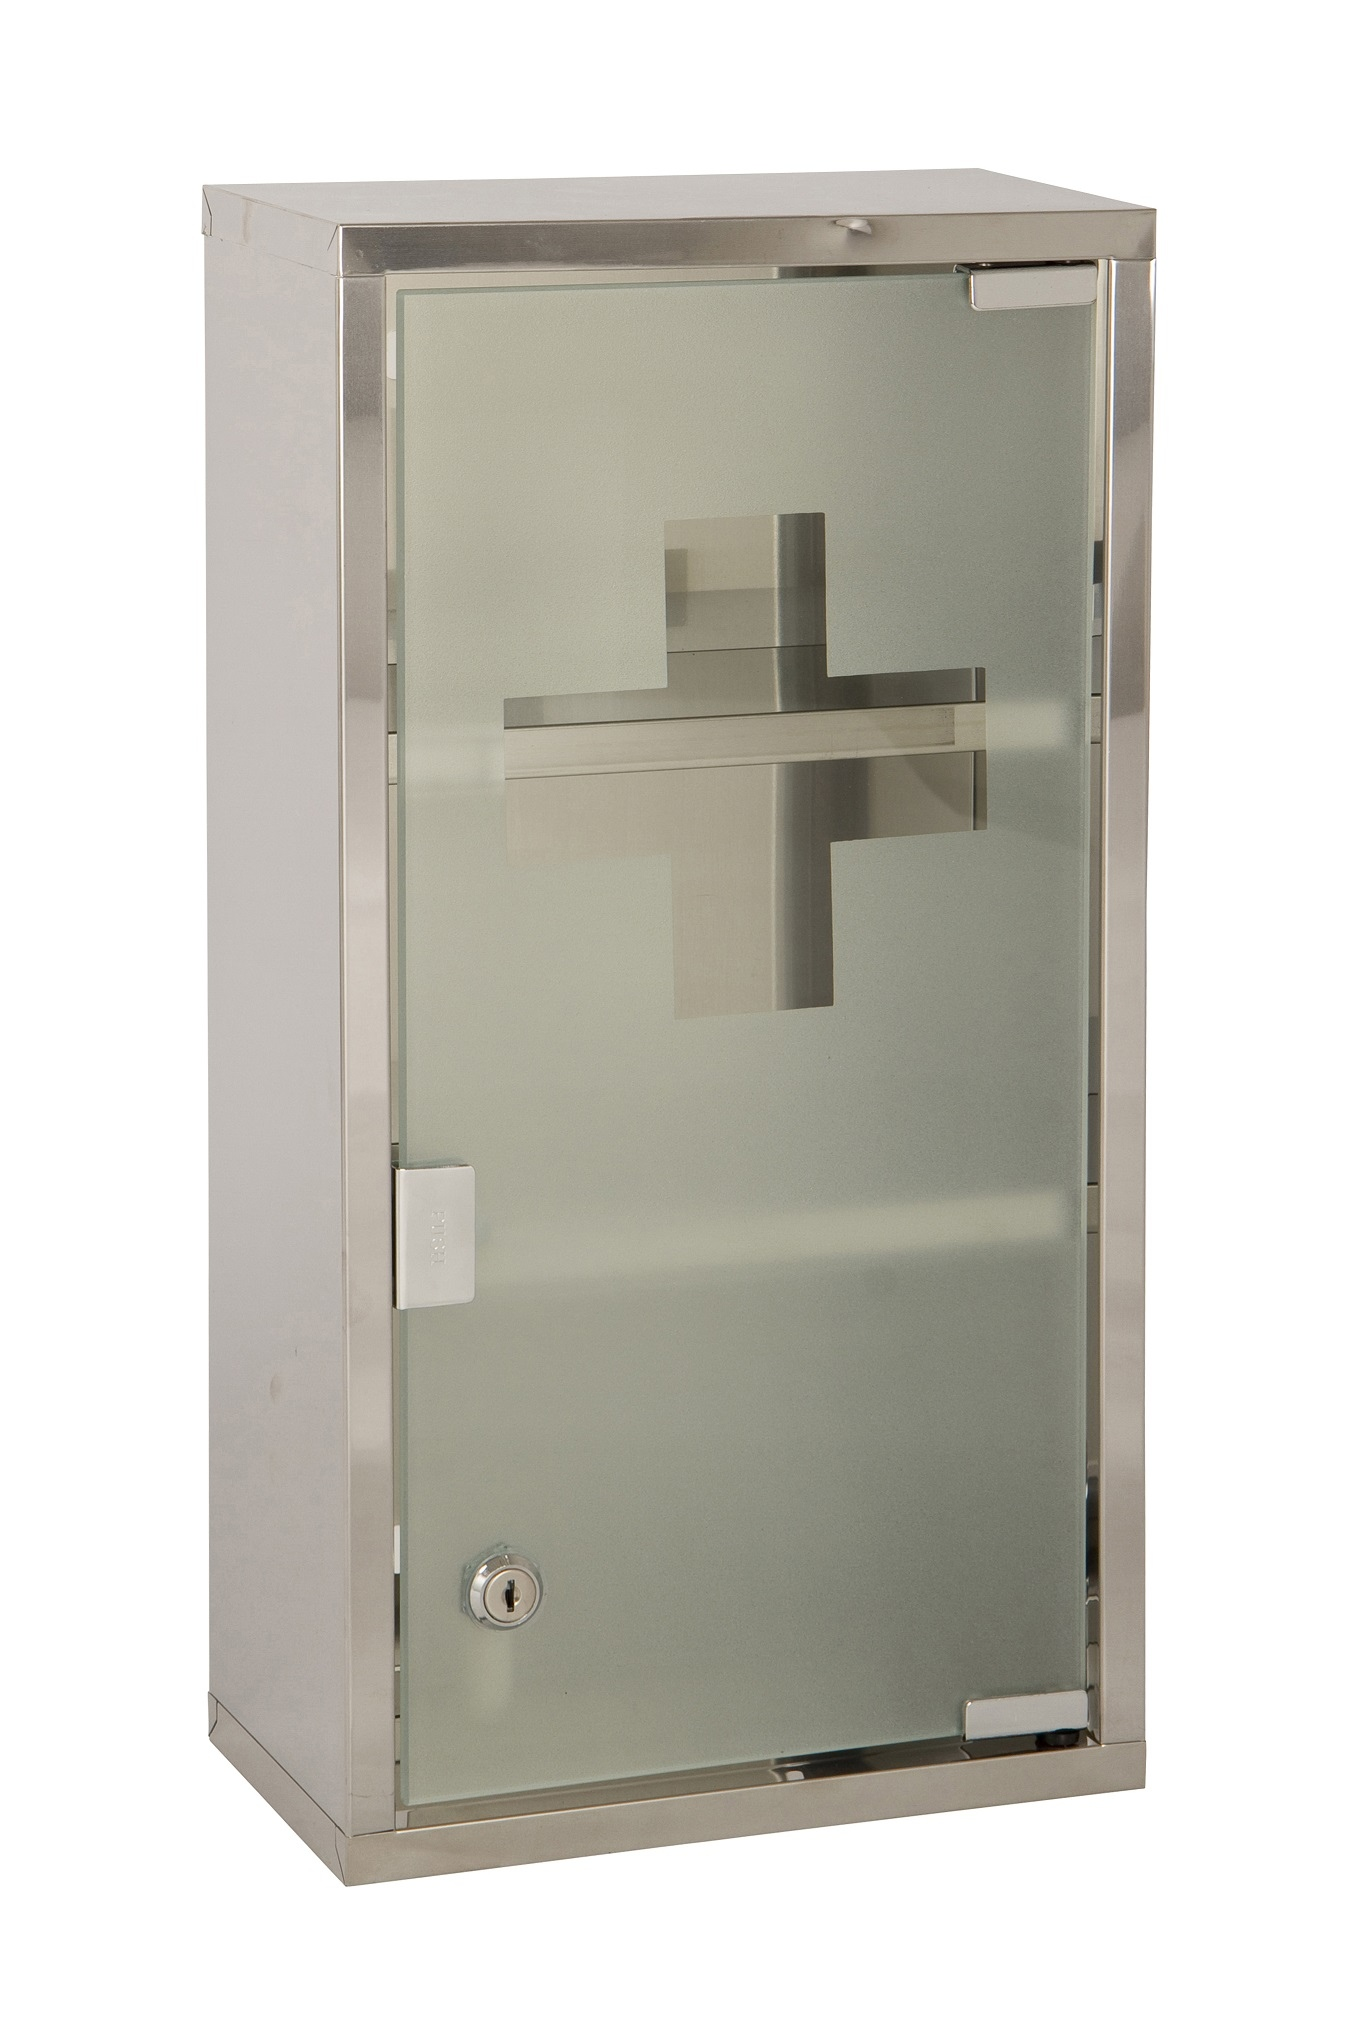 Wall mounted lockable 2 keys large medicine cabinet first aid box excellent care planetlyrics Gallery